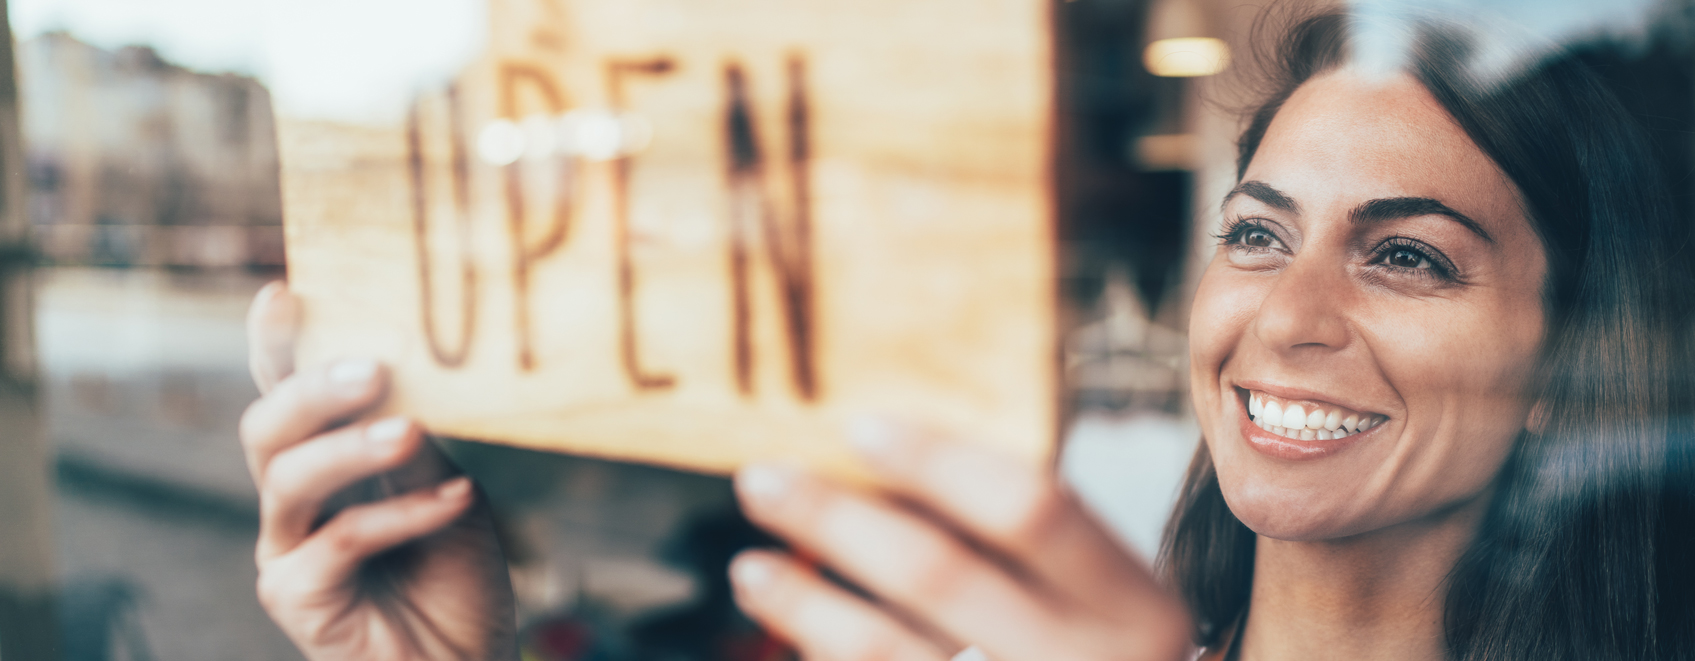 Person in storefront window with 'open' sign.